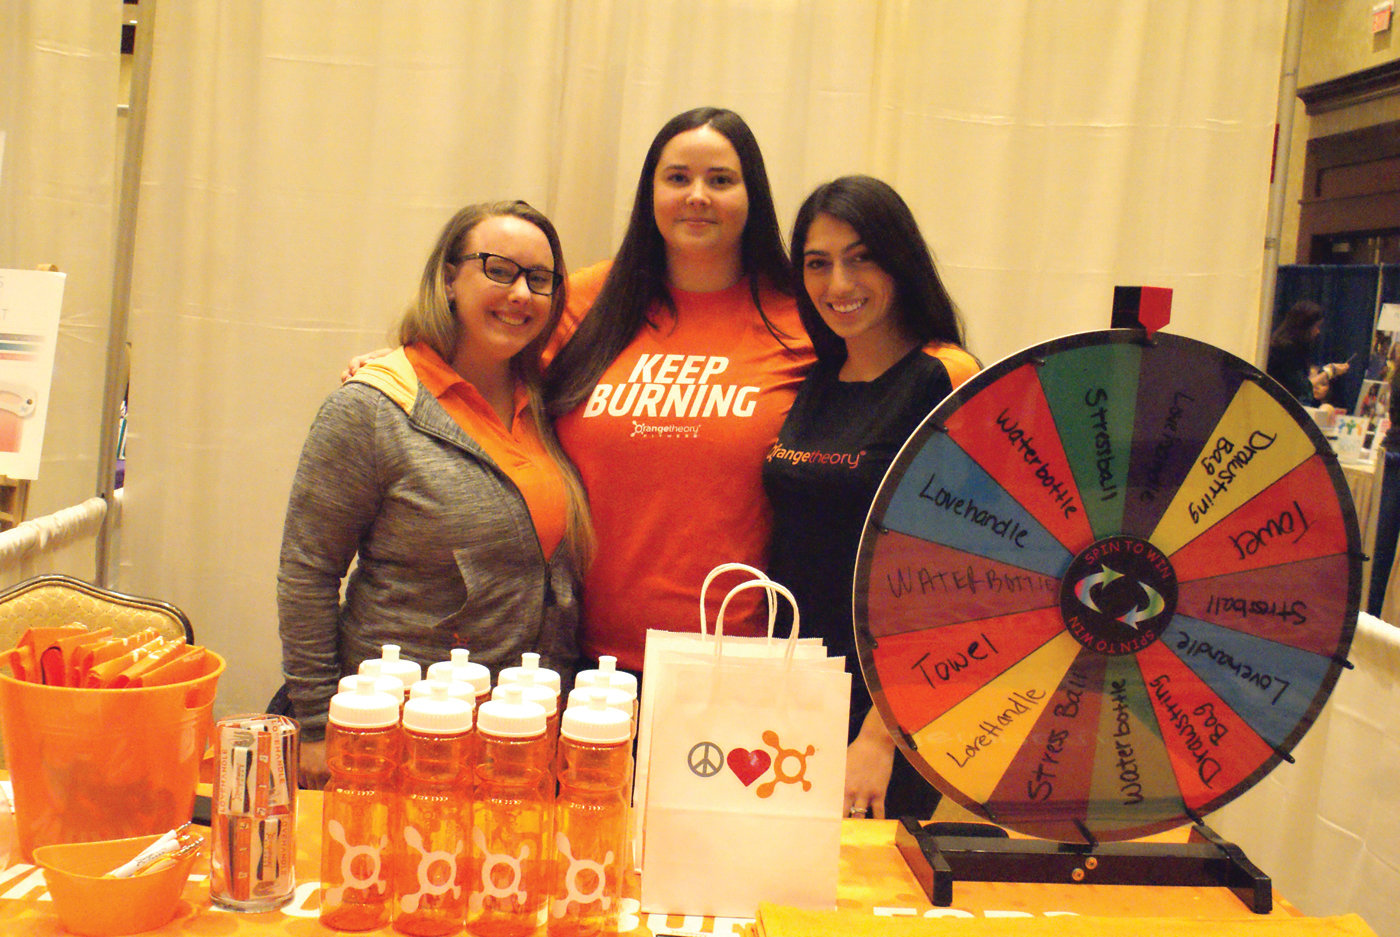 ORANGE IS THE COLOR: Pictured are (l-r) Kayla Perrin, Melanie Plankey and Taya Piccione from Orange Theory Fitness located in Cranston at the Rhode Island Women's Expo held this year at the Crowne Plaza.